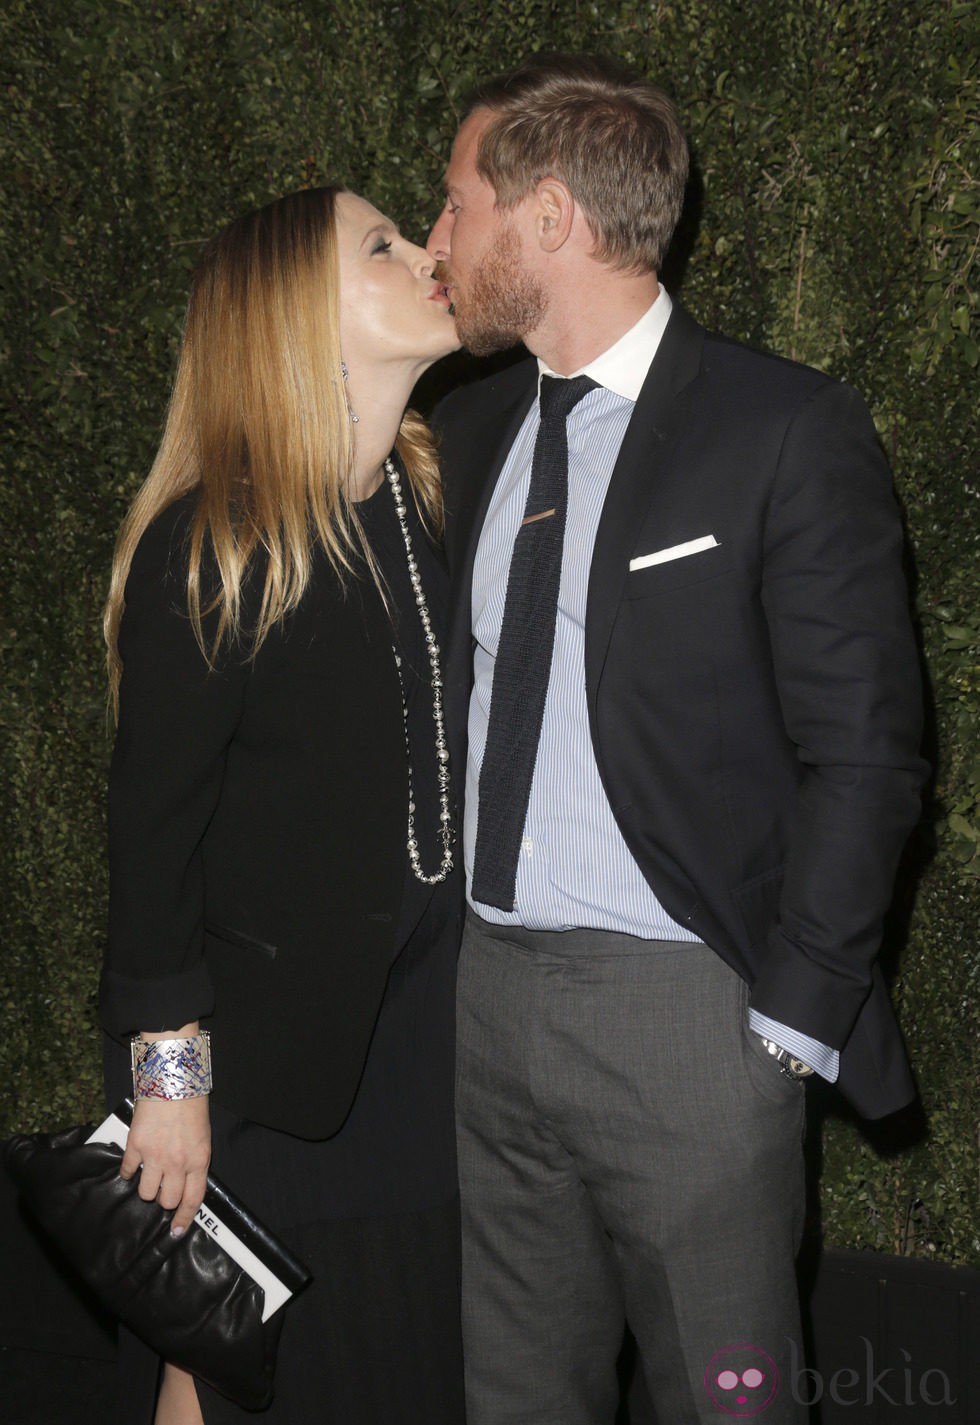 Drew Barrymore besando a Will Kopelman en la presentación de 'Find it in Everything'